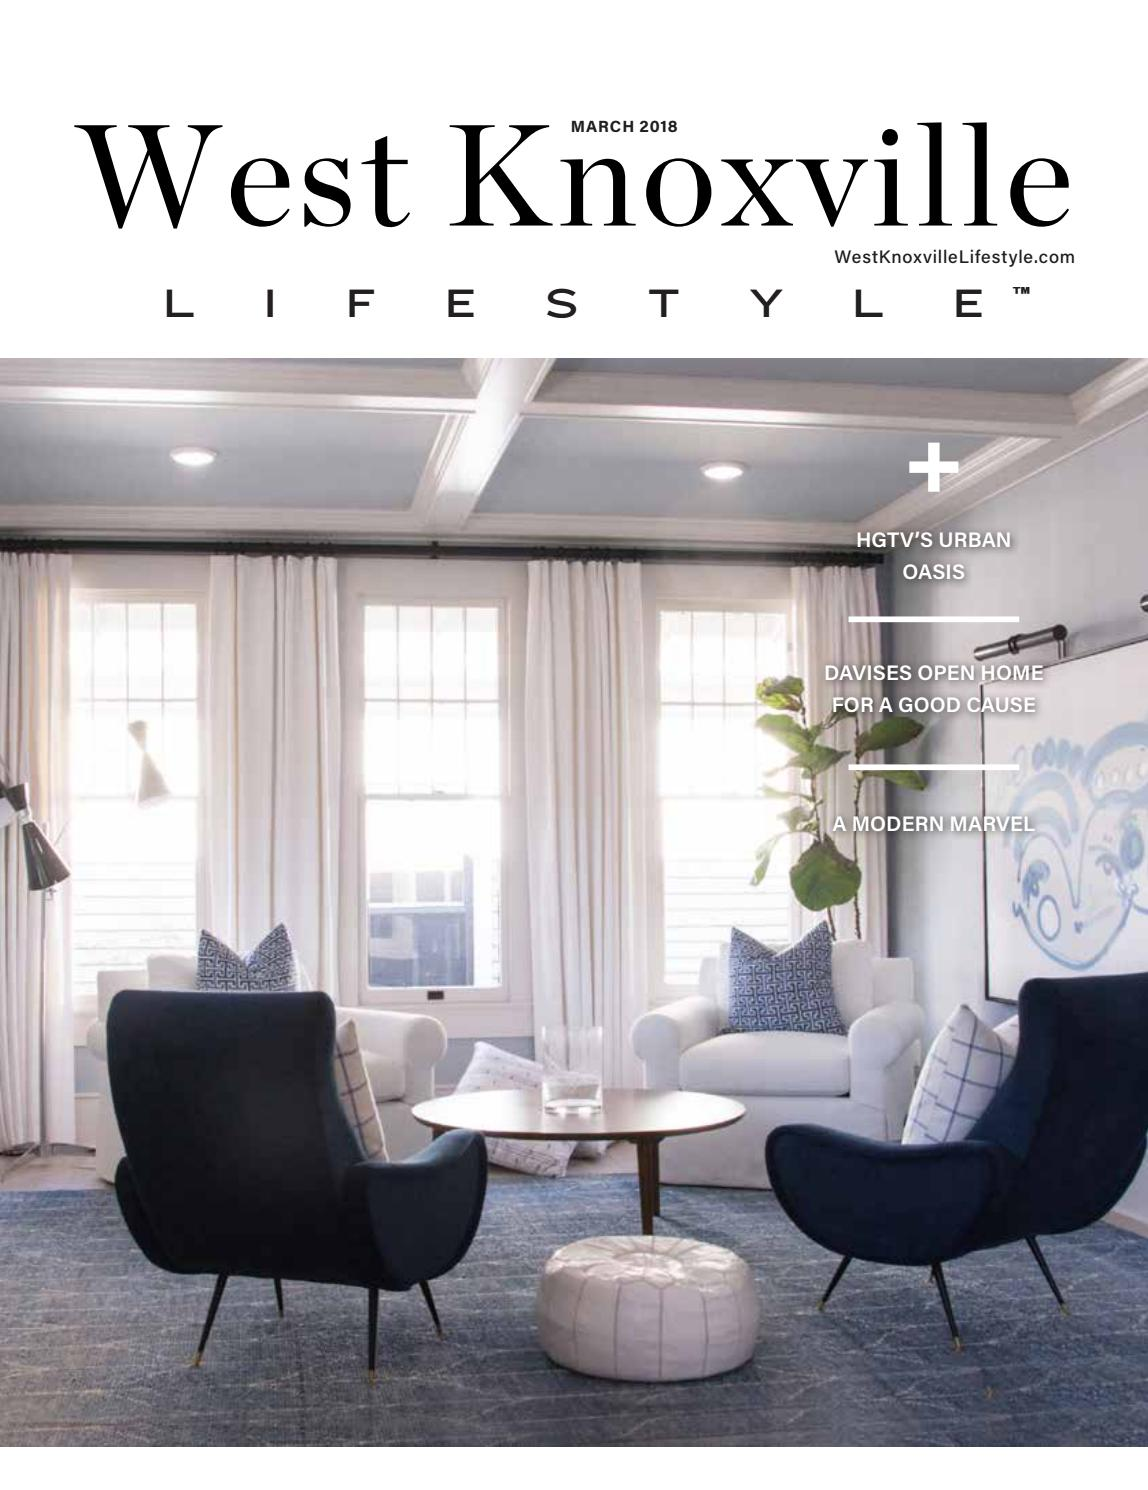 West Knoxville, TN March 2018 by Lifestyle Publications - issuu